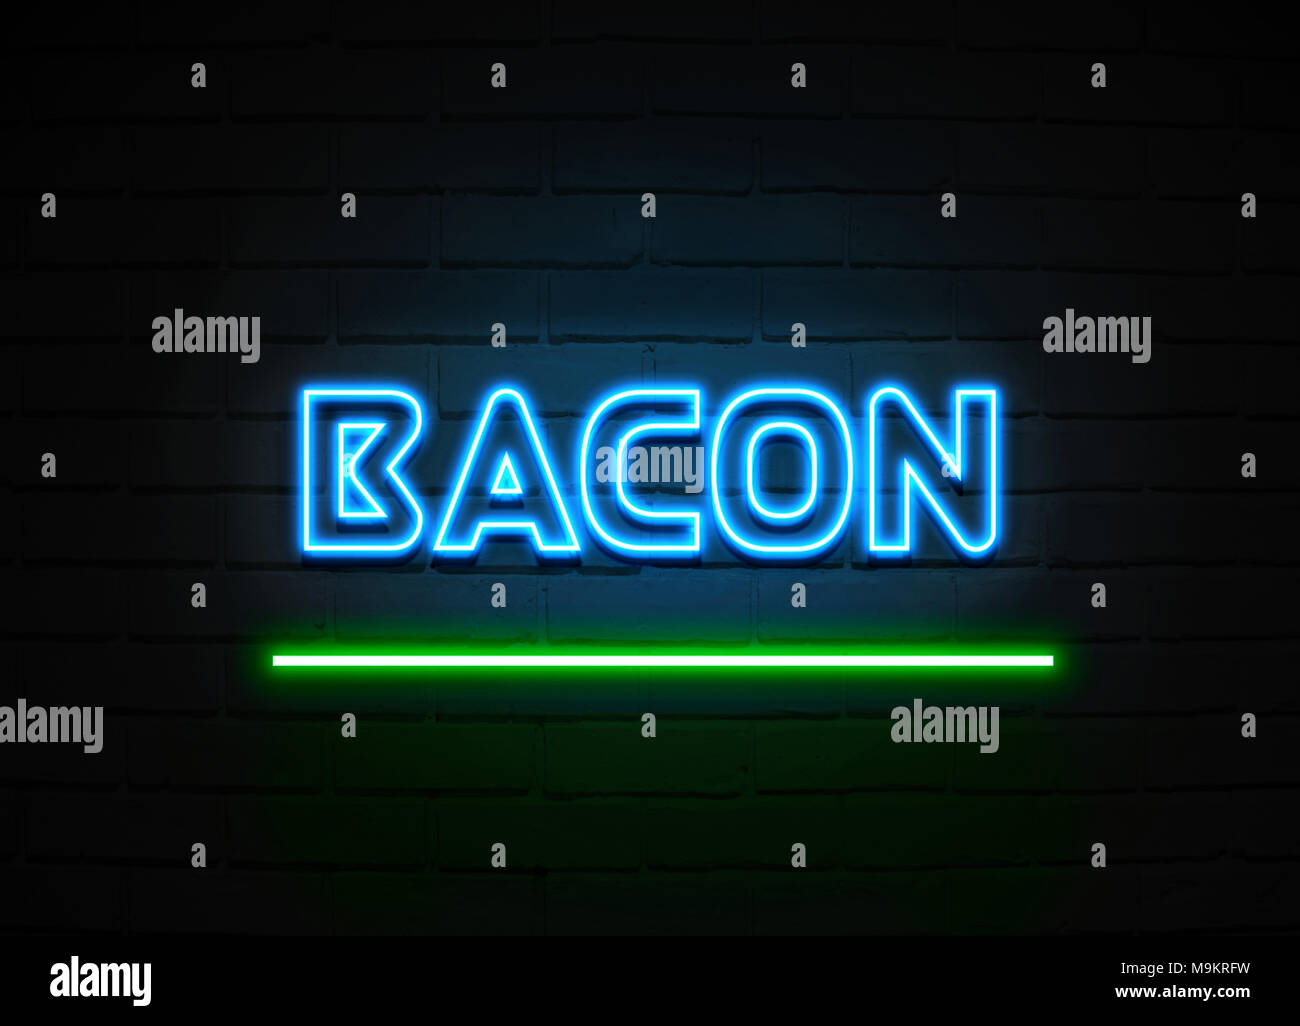 Bacon neon sign - Glowing Neon Sign on brickwall wall - 3D rendered royalty  free stock illustration Stock Photo - Alamy